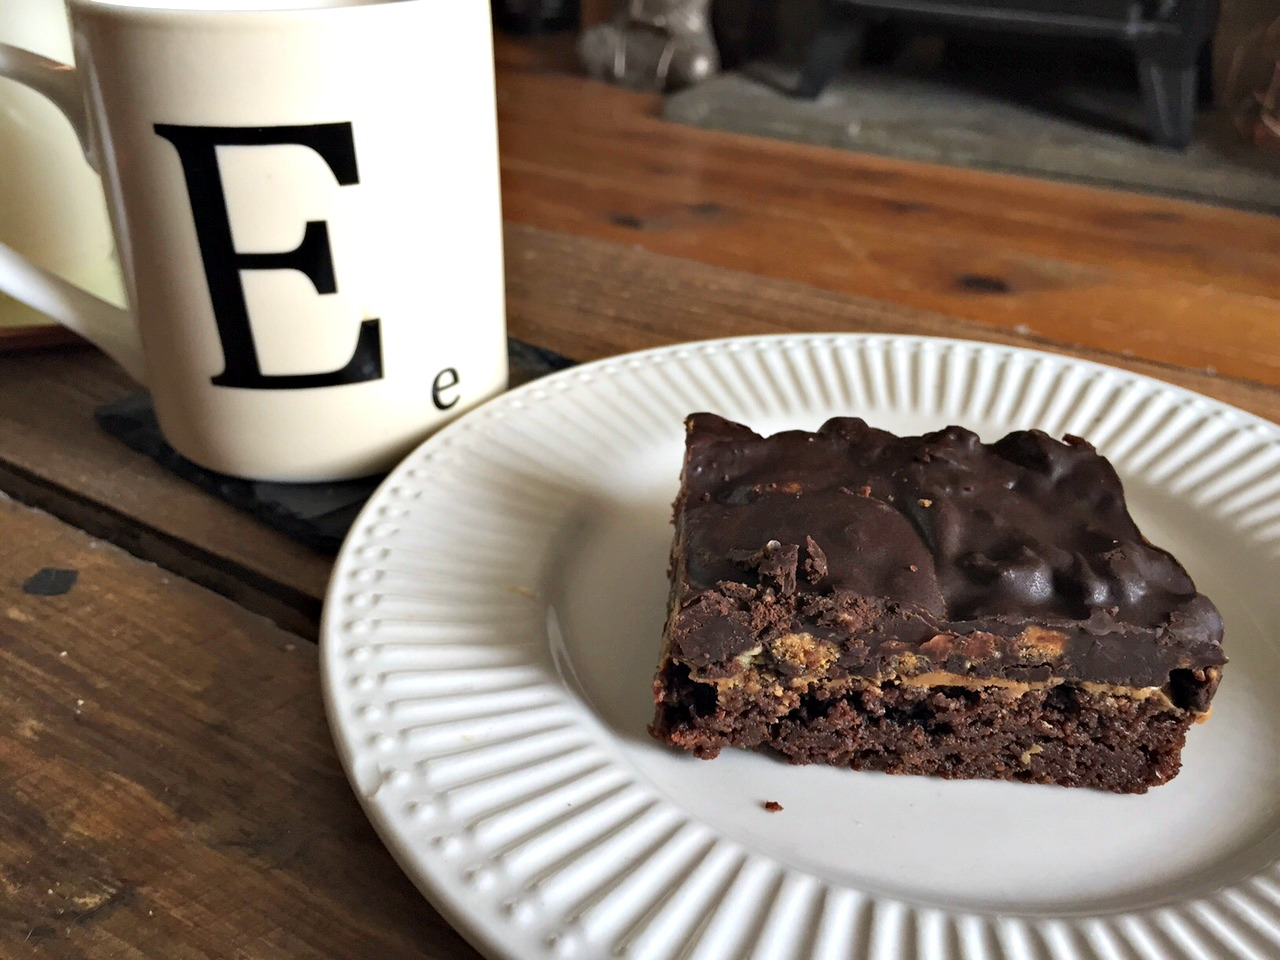 Vegan brownie from Good Apple Cafe in Sunderland